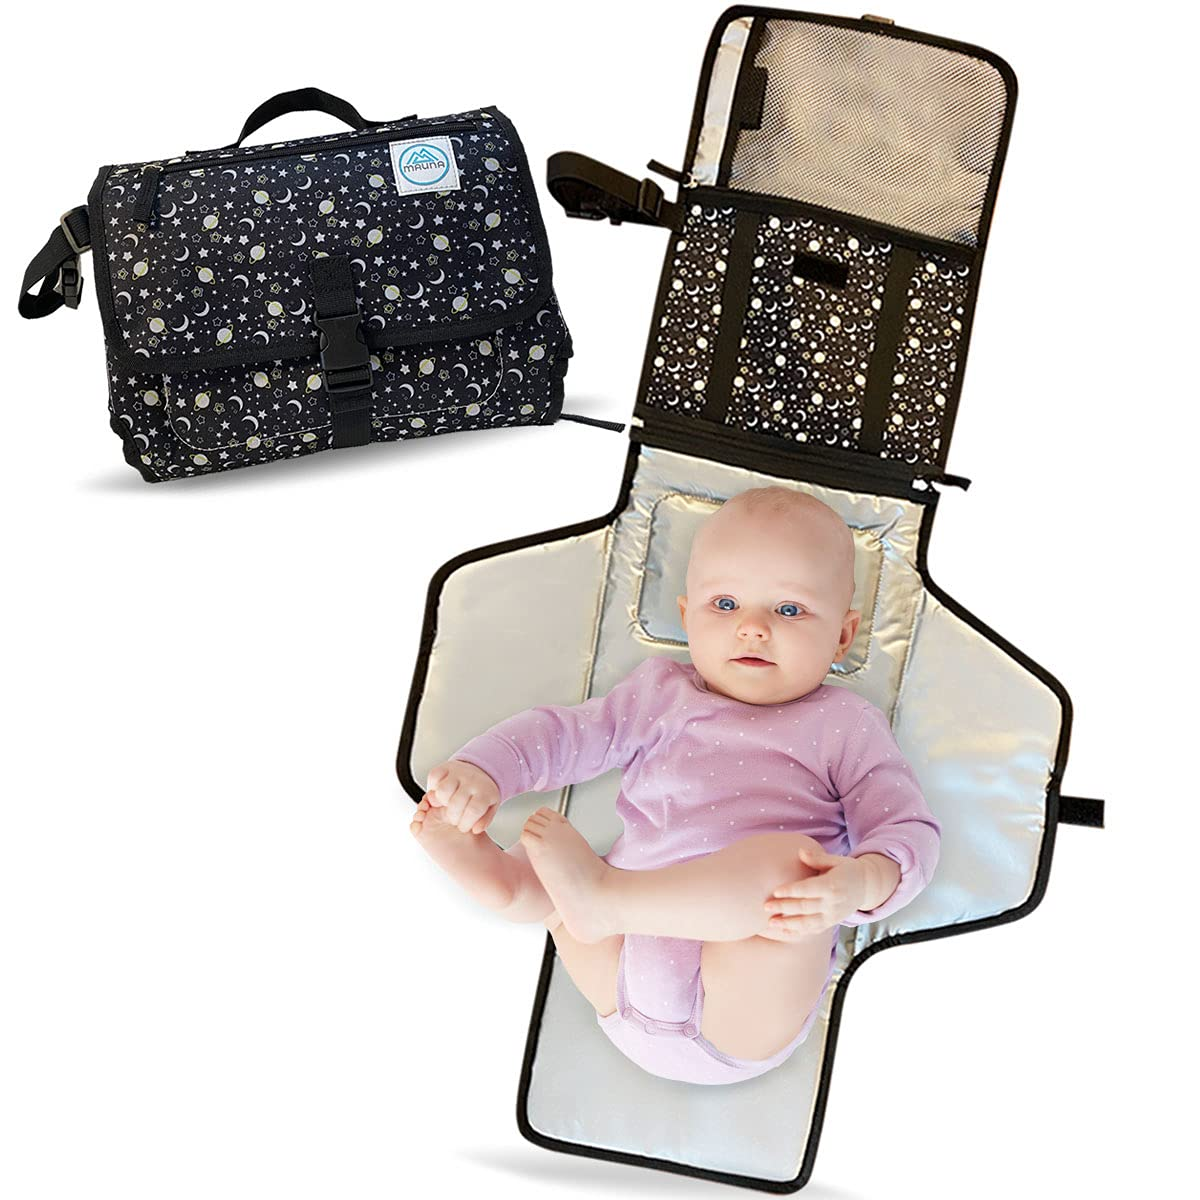 Mauna Baby Portable Changing Pad Travel Diaper Sta Mail order Max 62% OFF cheap Lightweight